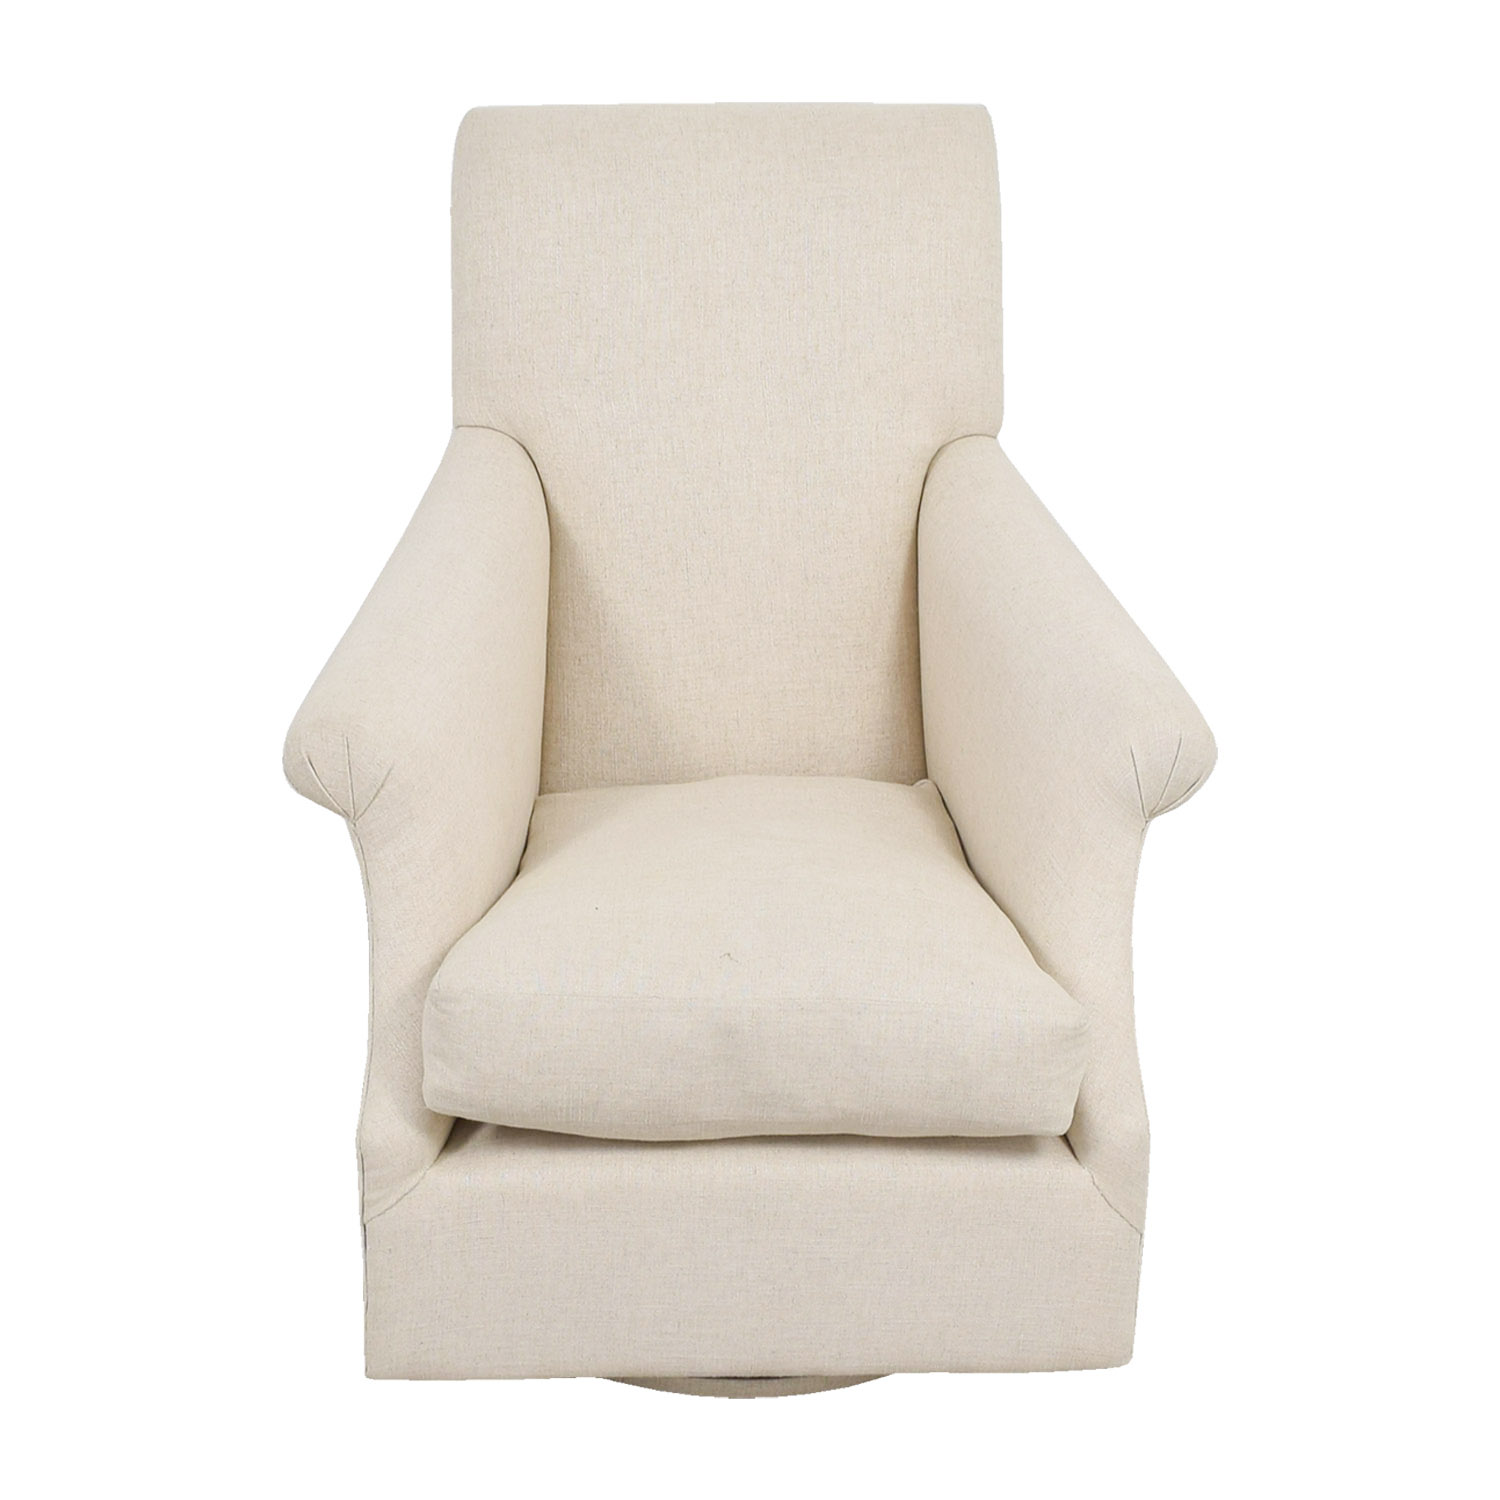 ... Andrew Martin Andrew Martin Bruce Beige Swivel Chair nyc ...  sc 1 st  Furnishare & 90% OFF - Andrew Martin Andrew Martin Bruce Beige Swivel Chair / Chairs